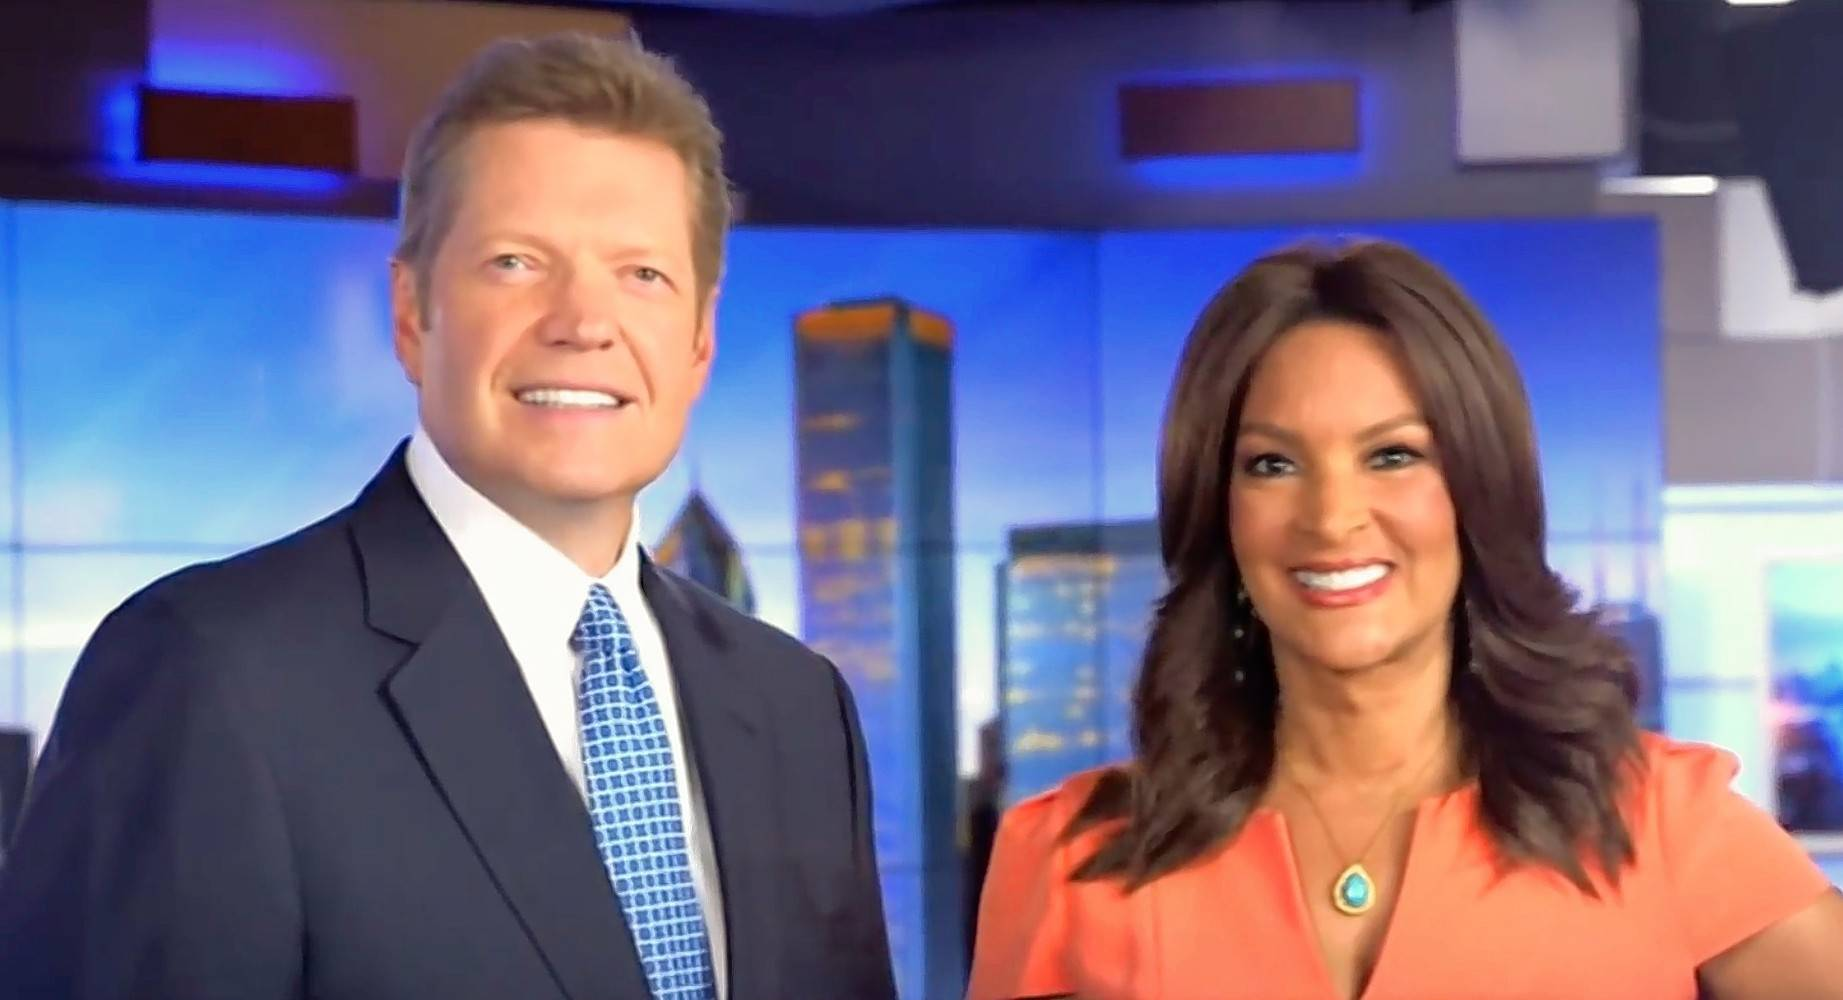 Courtesy of ABC 7 ChicagoWith Cheryl Burton anchoring election night coverage alongside Alan Krashesky for the first time on ABC 7 Chicago, the station again proved a decisive winner in the ratings Tuesday.